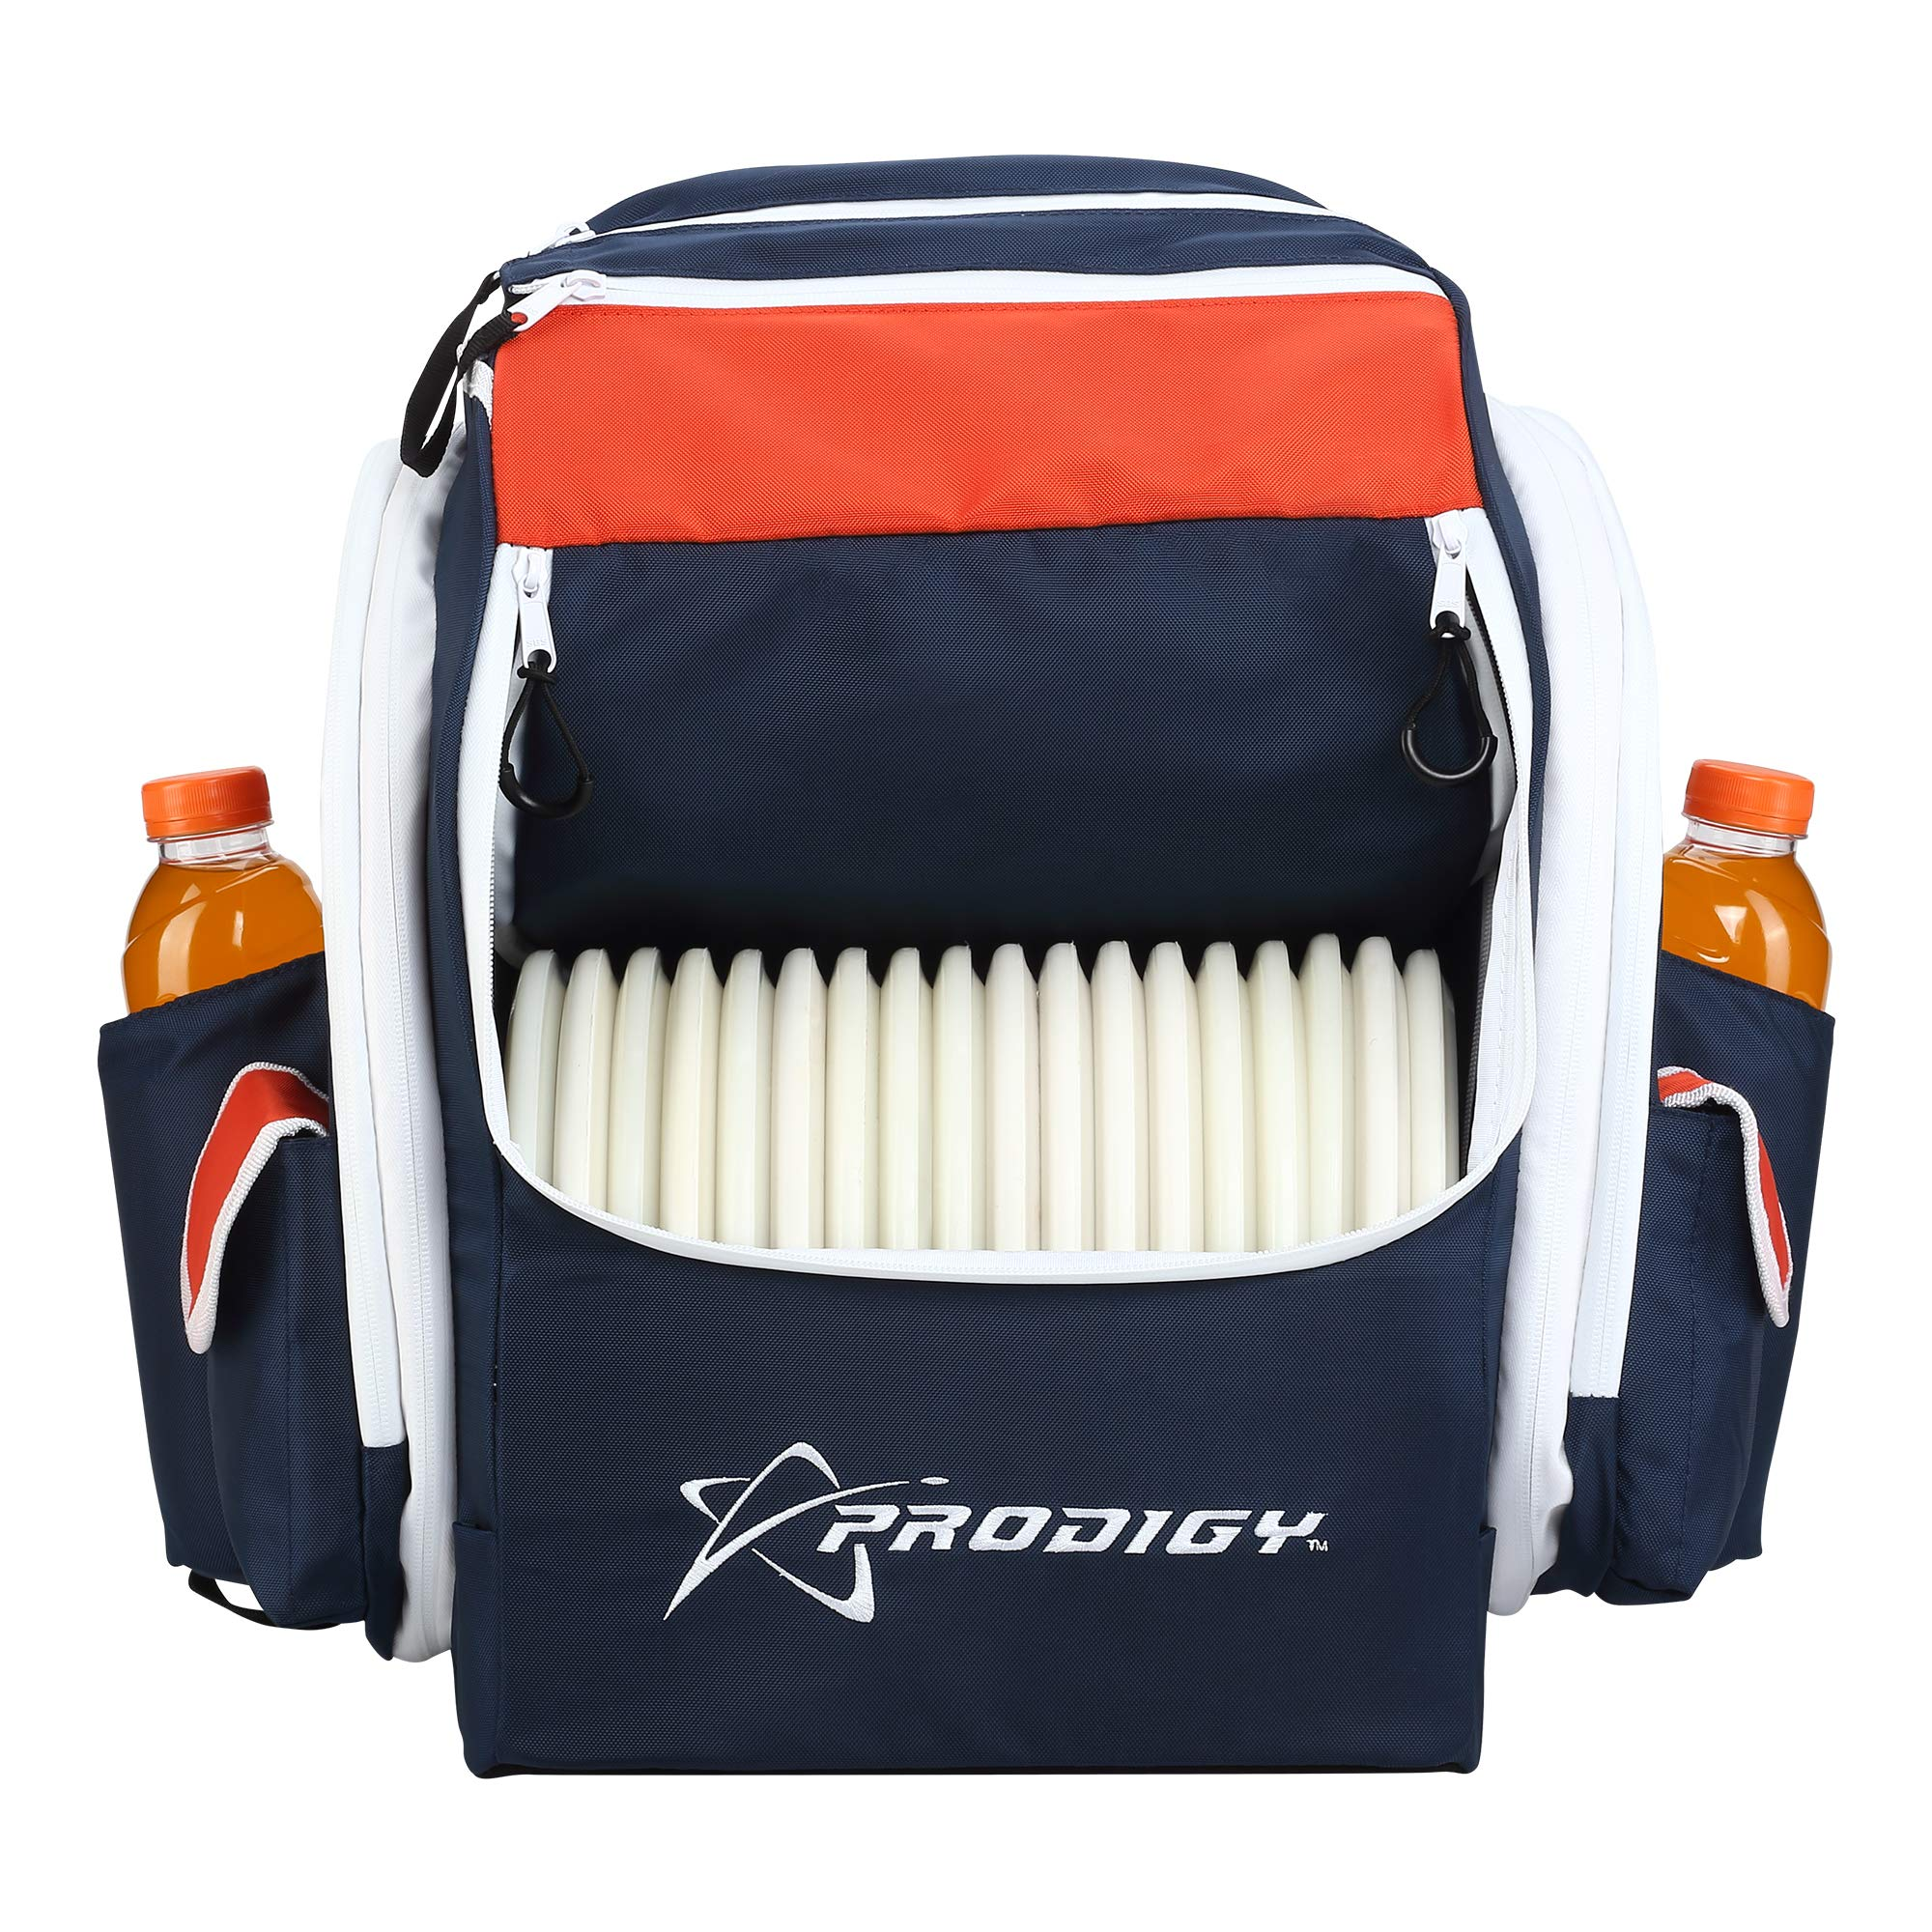 Prodigy Disc BP-1 V2 Disc Golf Backpack Bag - Fits 30+ Discs - Pro Quality (Navy Blue/Red, Rainfly)